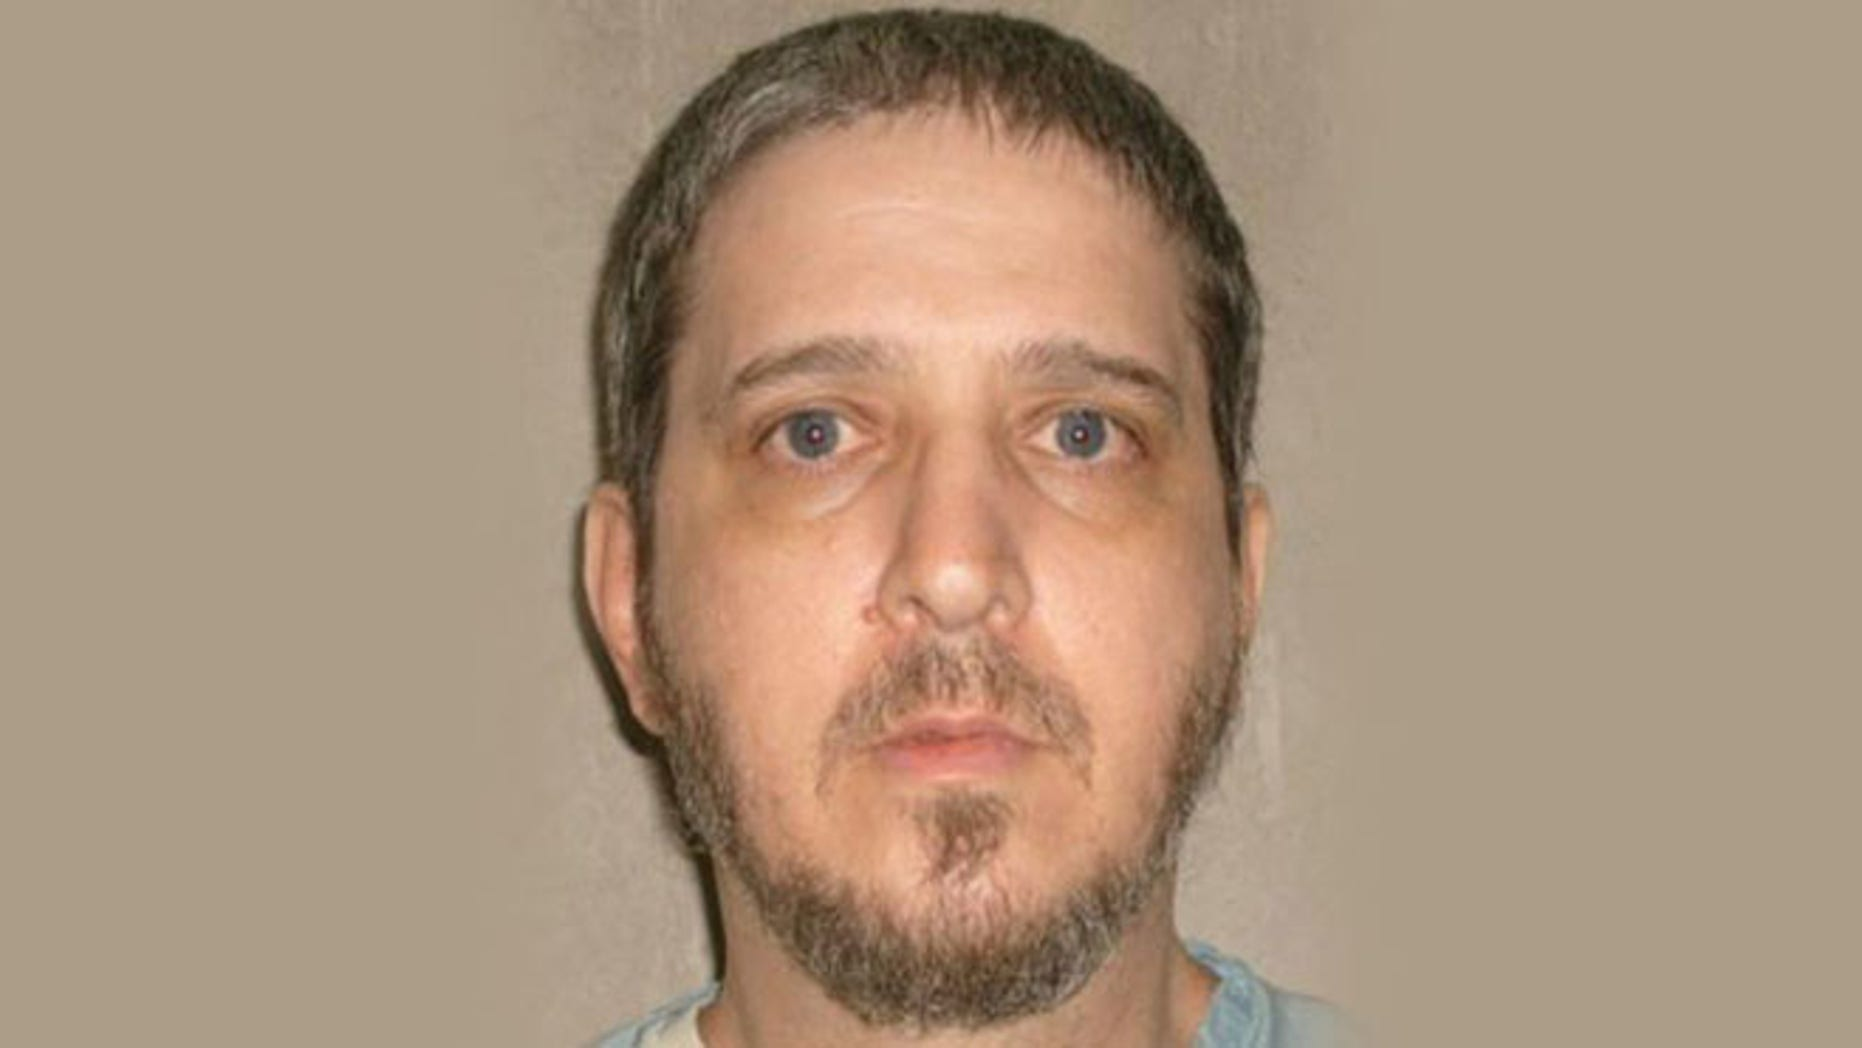 Oklahoma inmate Richard Glossip is shown.